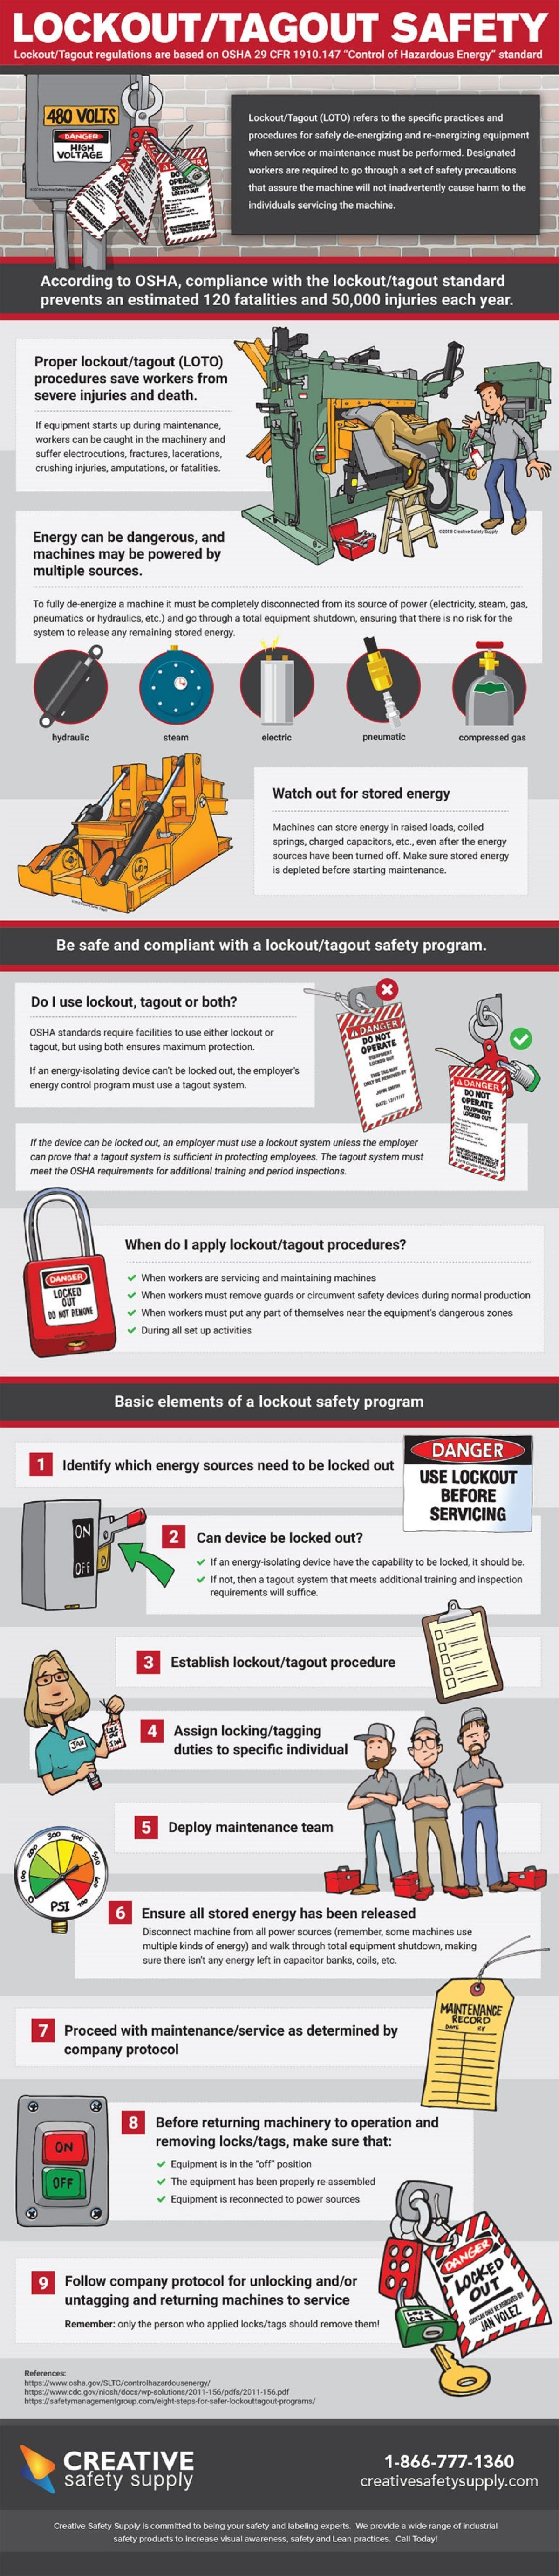 lockout-tagout-safety-infographic